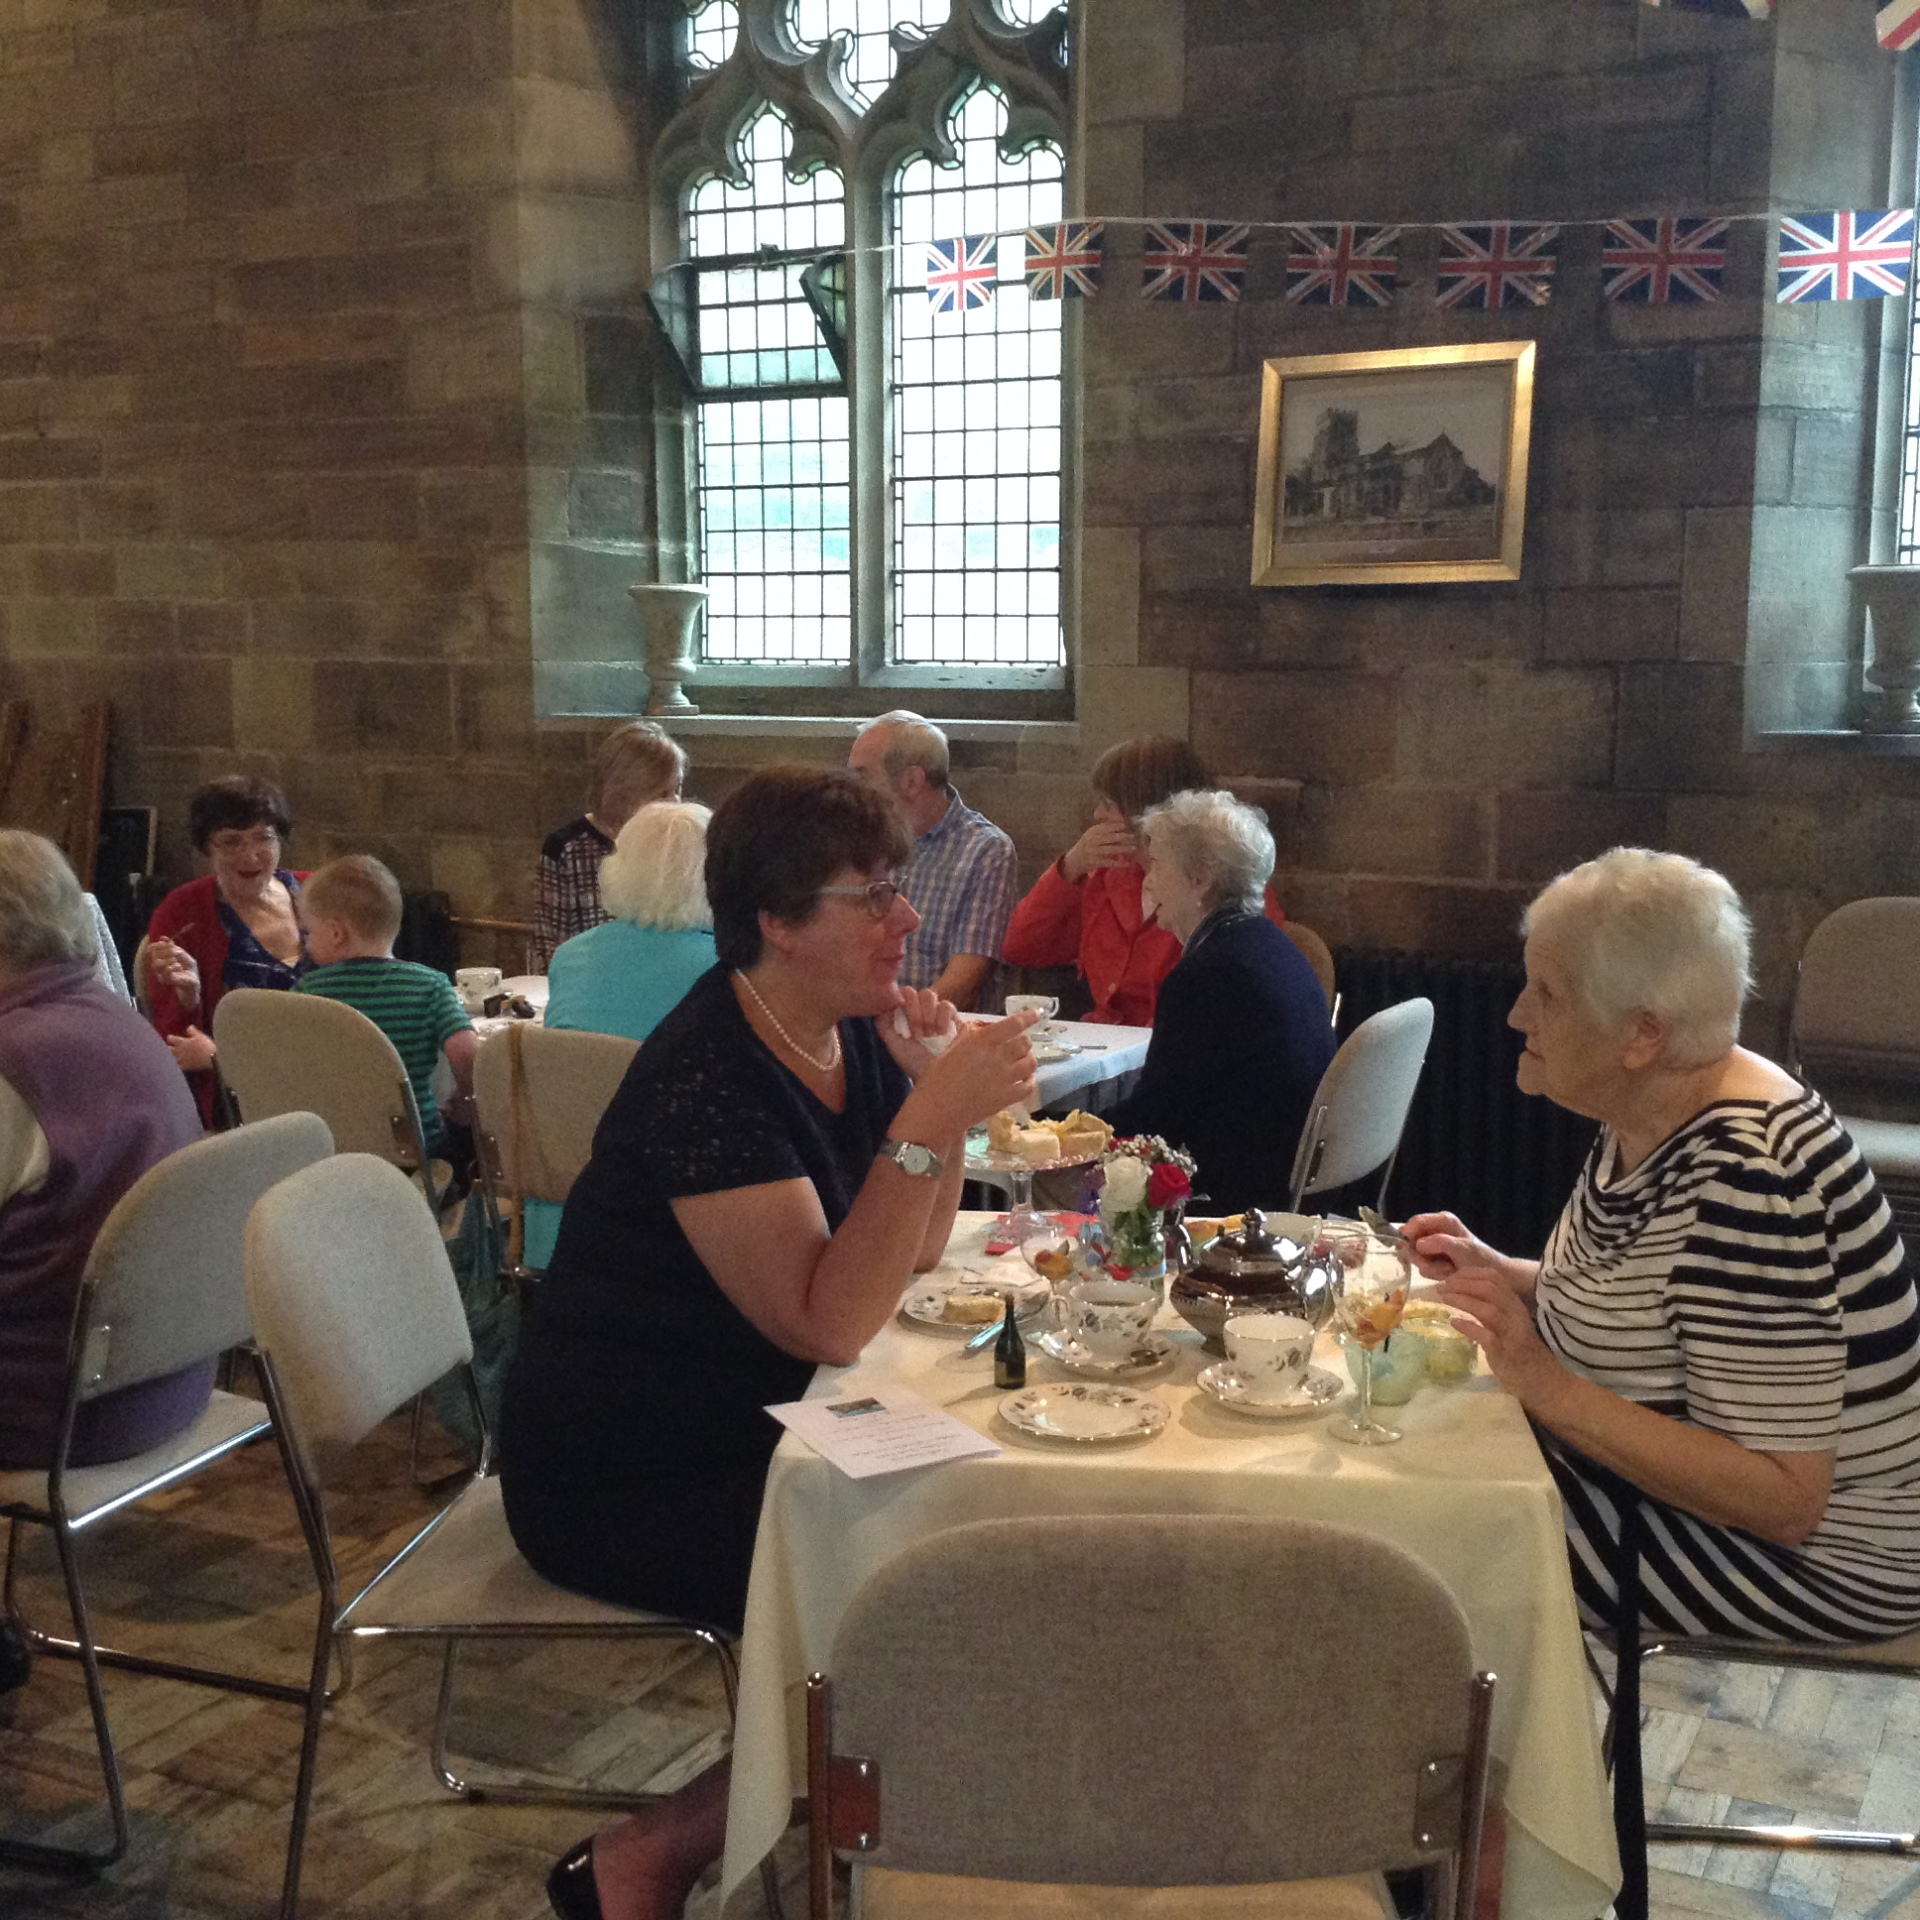 afternoon tea in the North Aisle